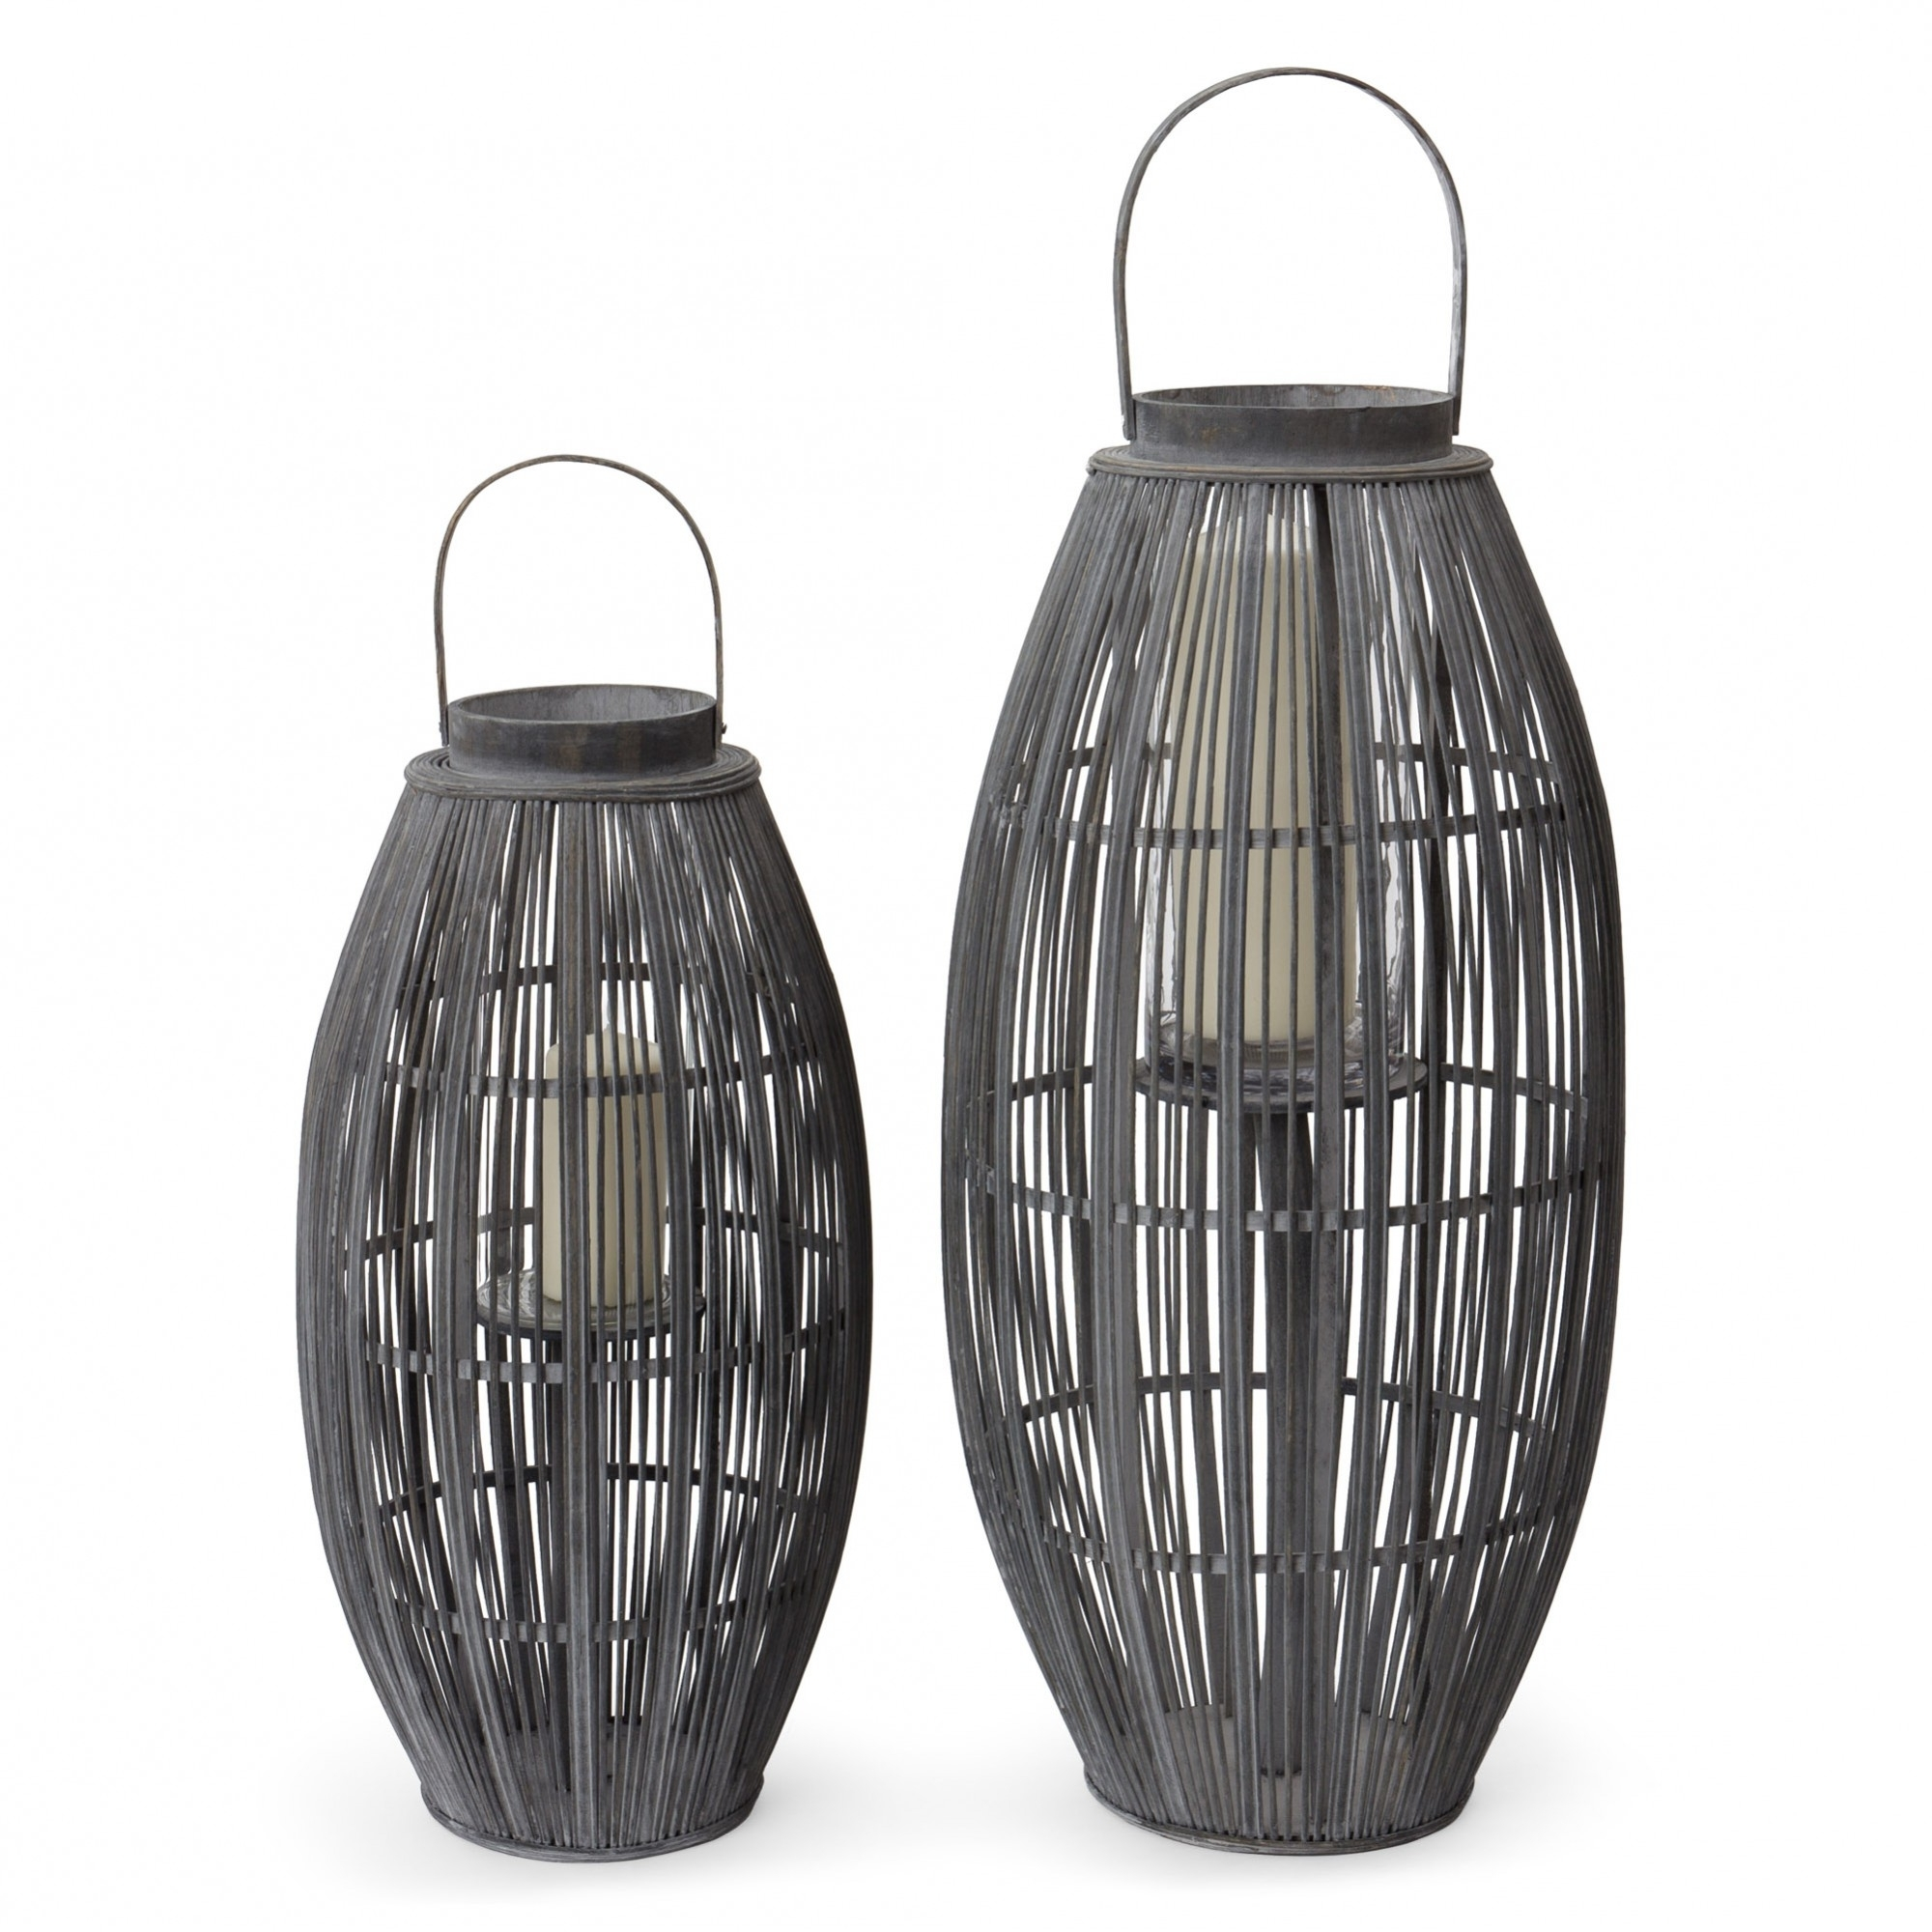 Niya Garden Lantern, Light Grey With Large Cage Design Intended For Best And Newest Outdoor Bamboo Lanterns (View 2 of 20)